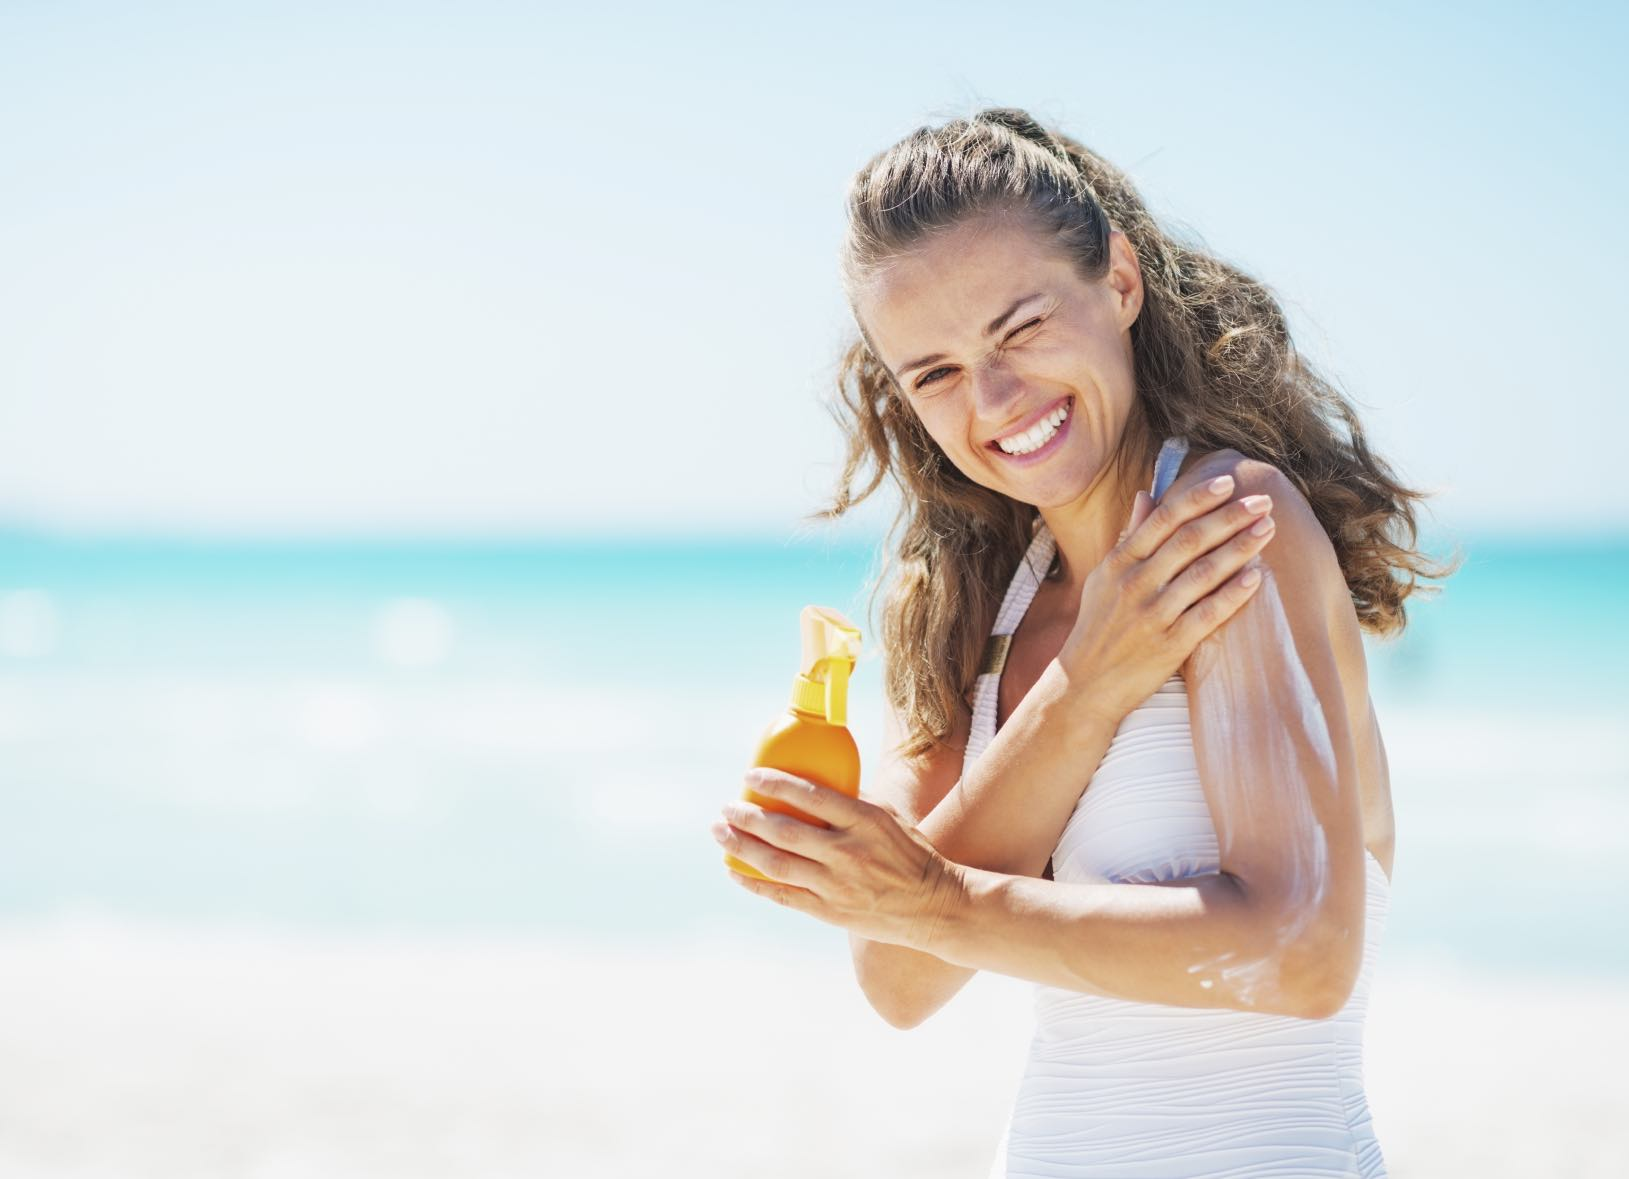 Protect that pout! Learn how you can defend your kisser from sun damage and skin cancer: